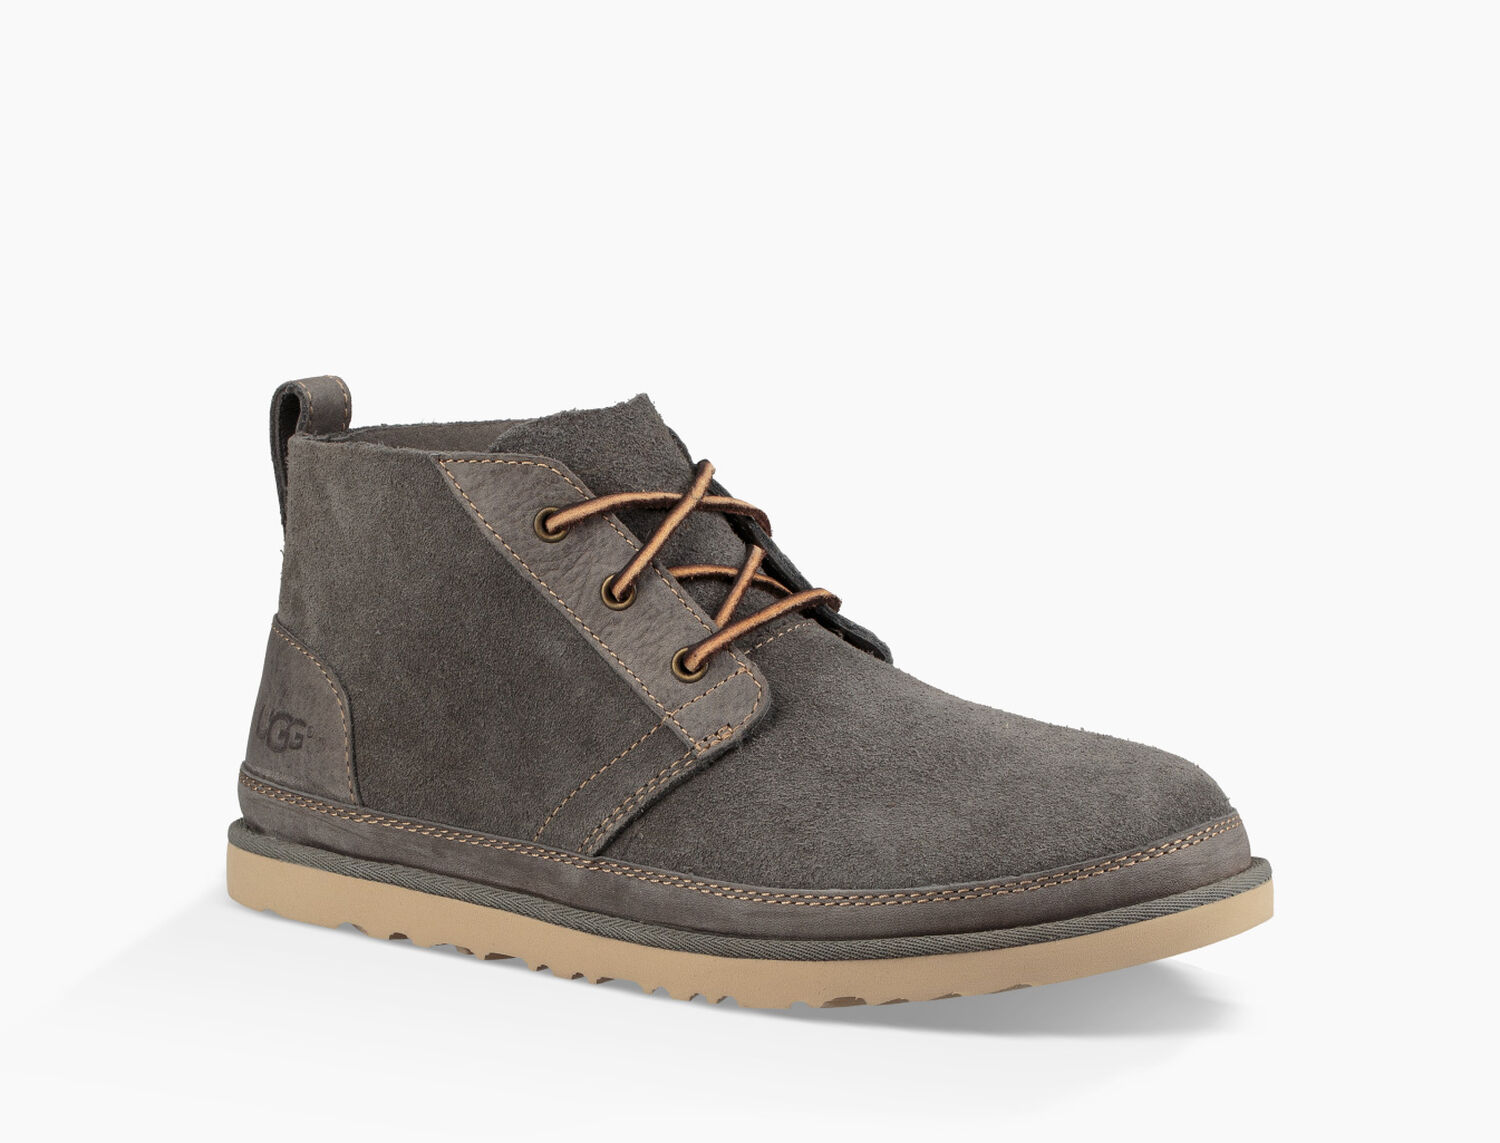 8c3a8a8626b Men's Share this product Neumel Unlined Leather Boot